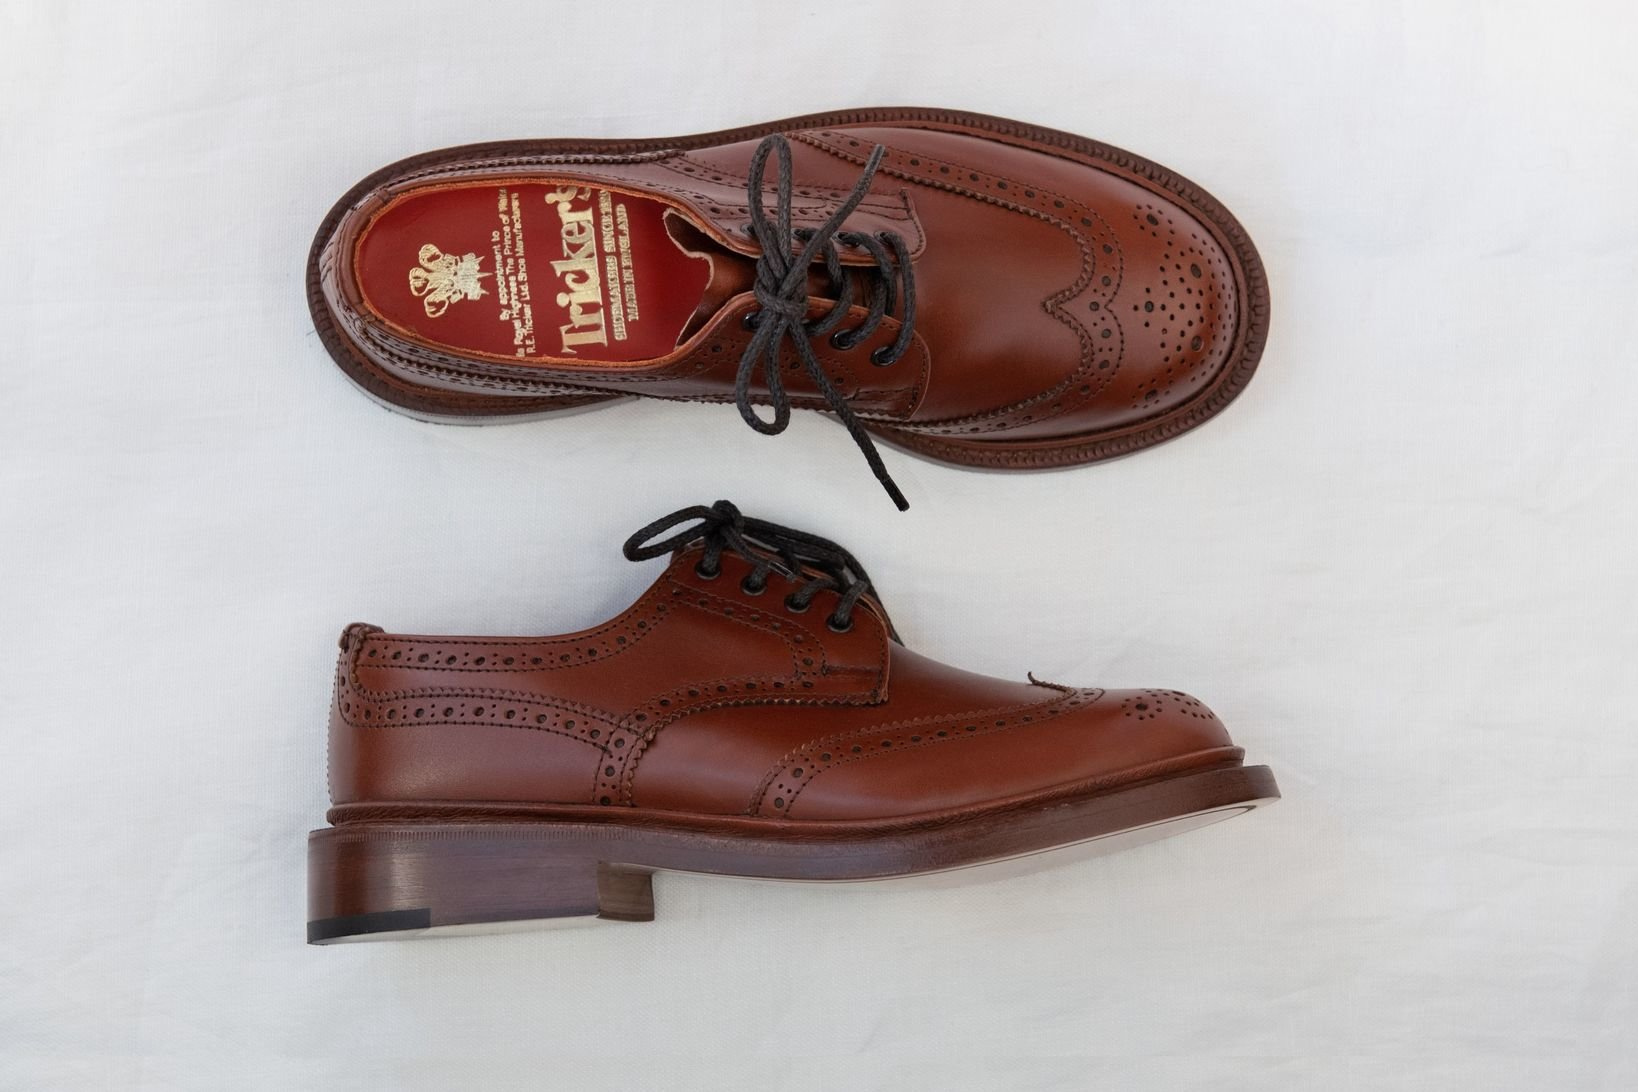 「<a href=http://www.trickers-store.jp/shopdetail/000000000117/women/page1/recommend/ target='_blank'>ANNE</a>(L5679)」¥75,000+税/トリッカーズ青山店